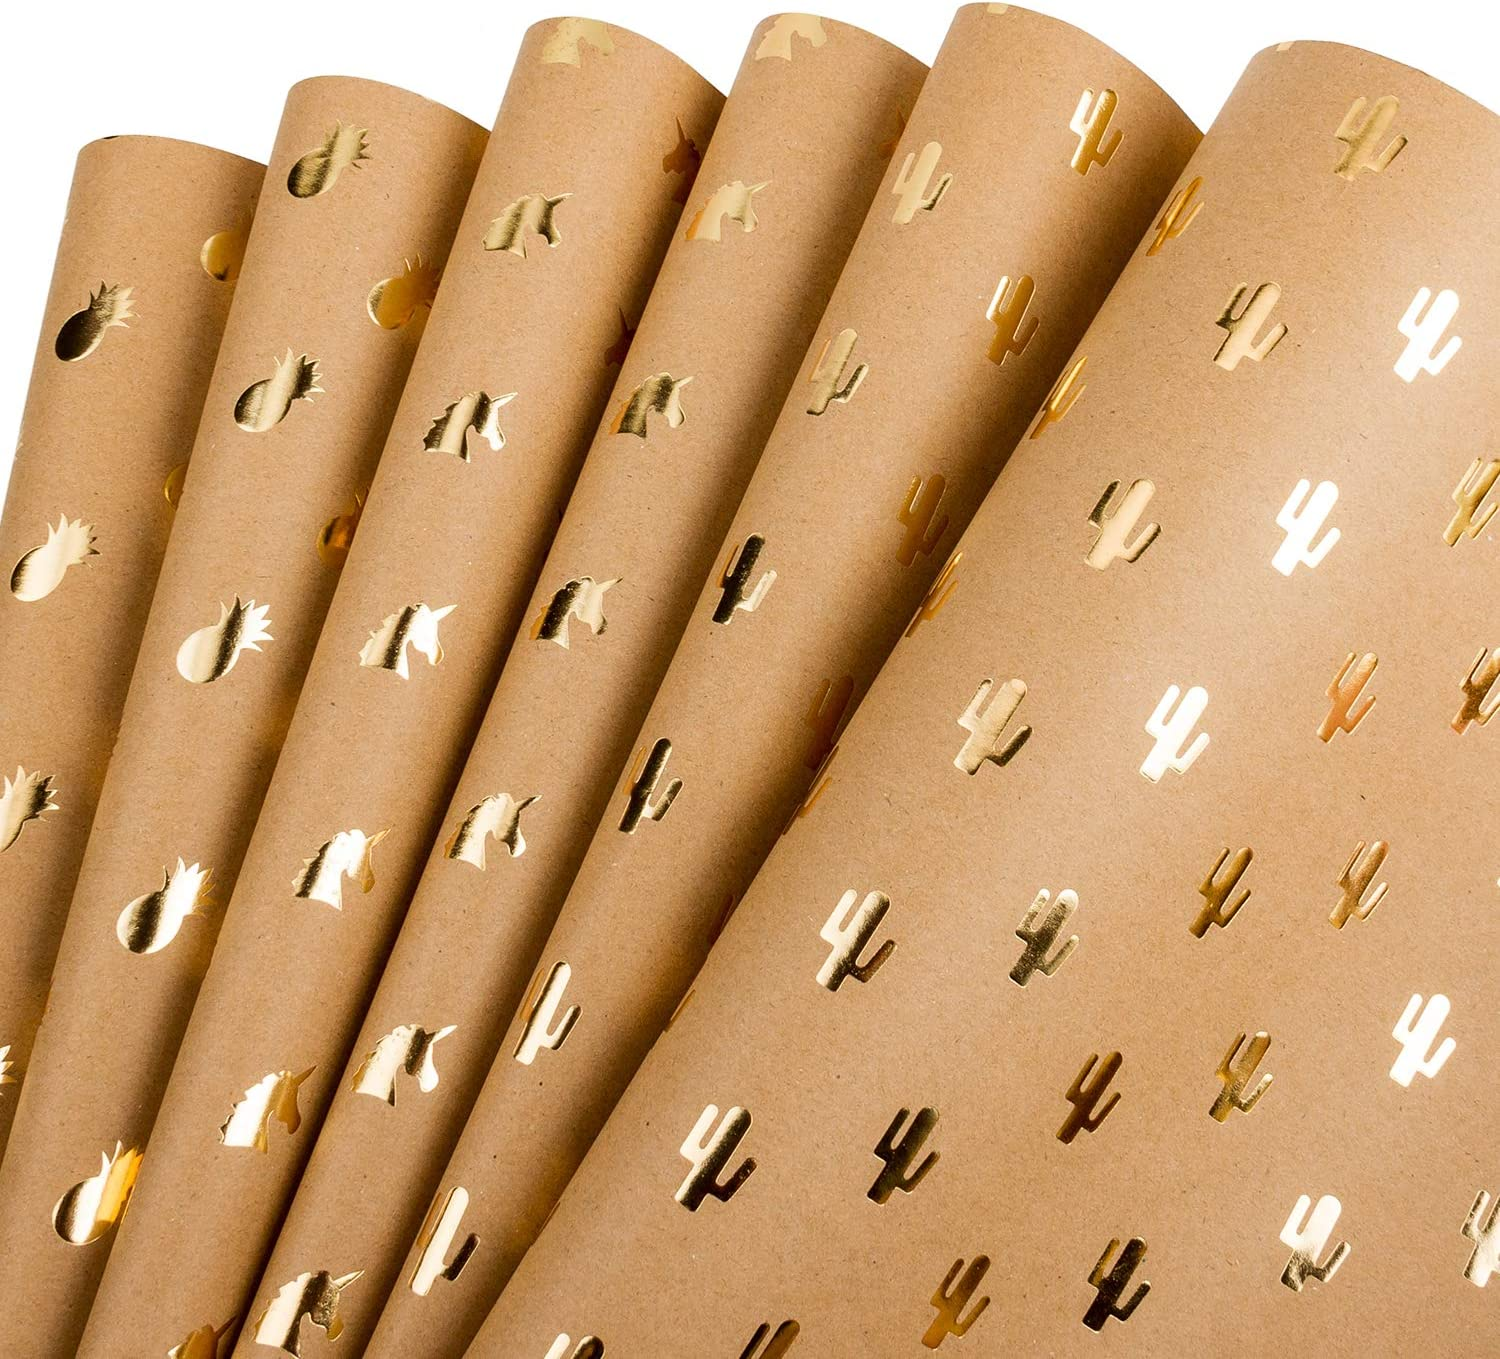 RUSPEPA Kraft Wrapping Paper Gold Foil Pineapple Cactus Shiny Kraft Paper for Birthday, Holiday, Wedding Gift Wrap - 6 Sheets Packed as 1 roll- 17.5 x 30 Inch per Sheet